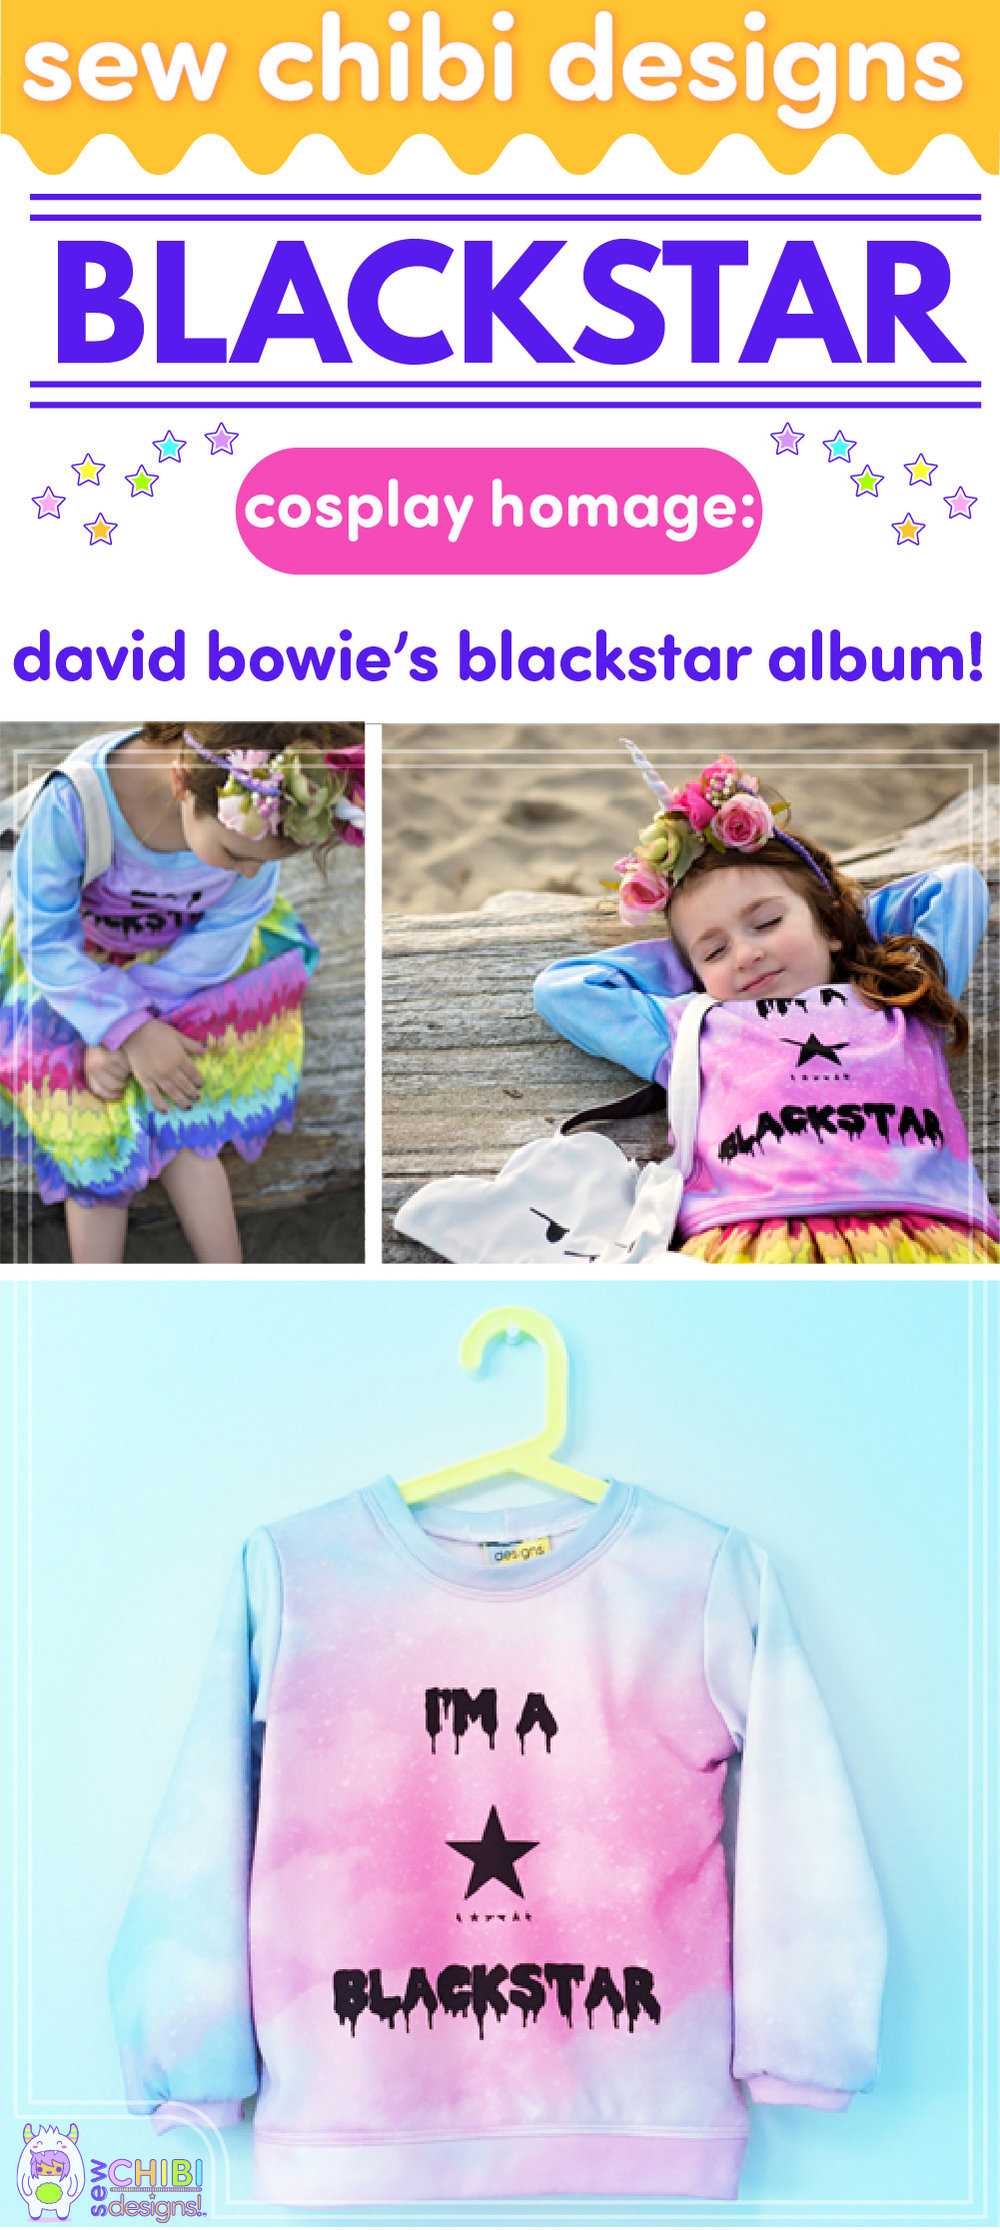 David Bowie Blackstar pastel goth and rainbows chibi cosplay sewn by Sew Chibi Designs for Sew Geeky